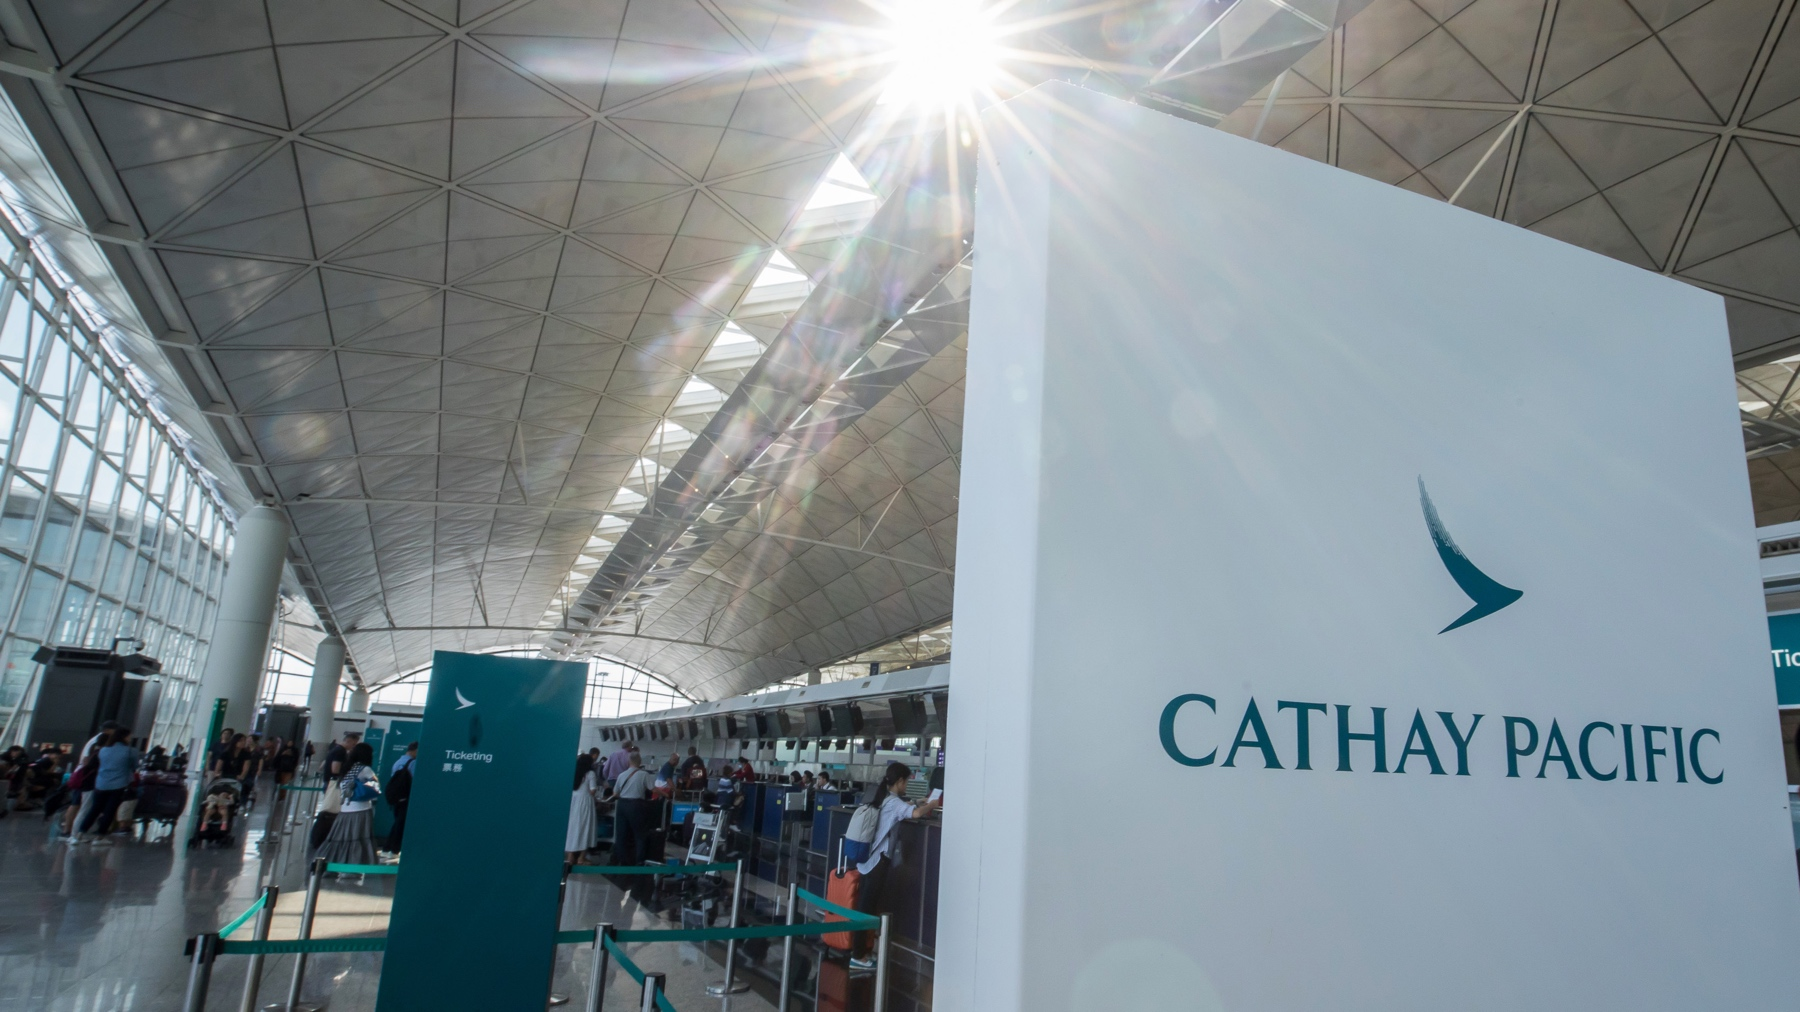 Hong Kong's flagship airline to close U.S. cabin crew bases due to COVID-19